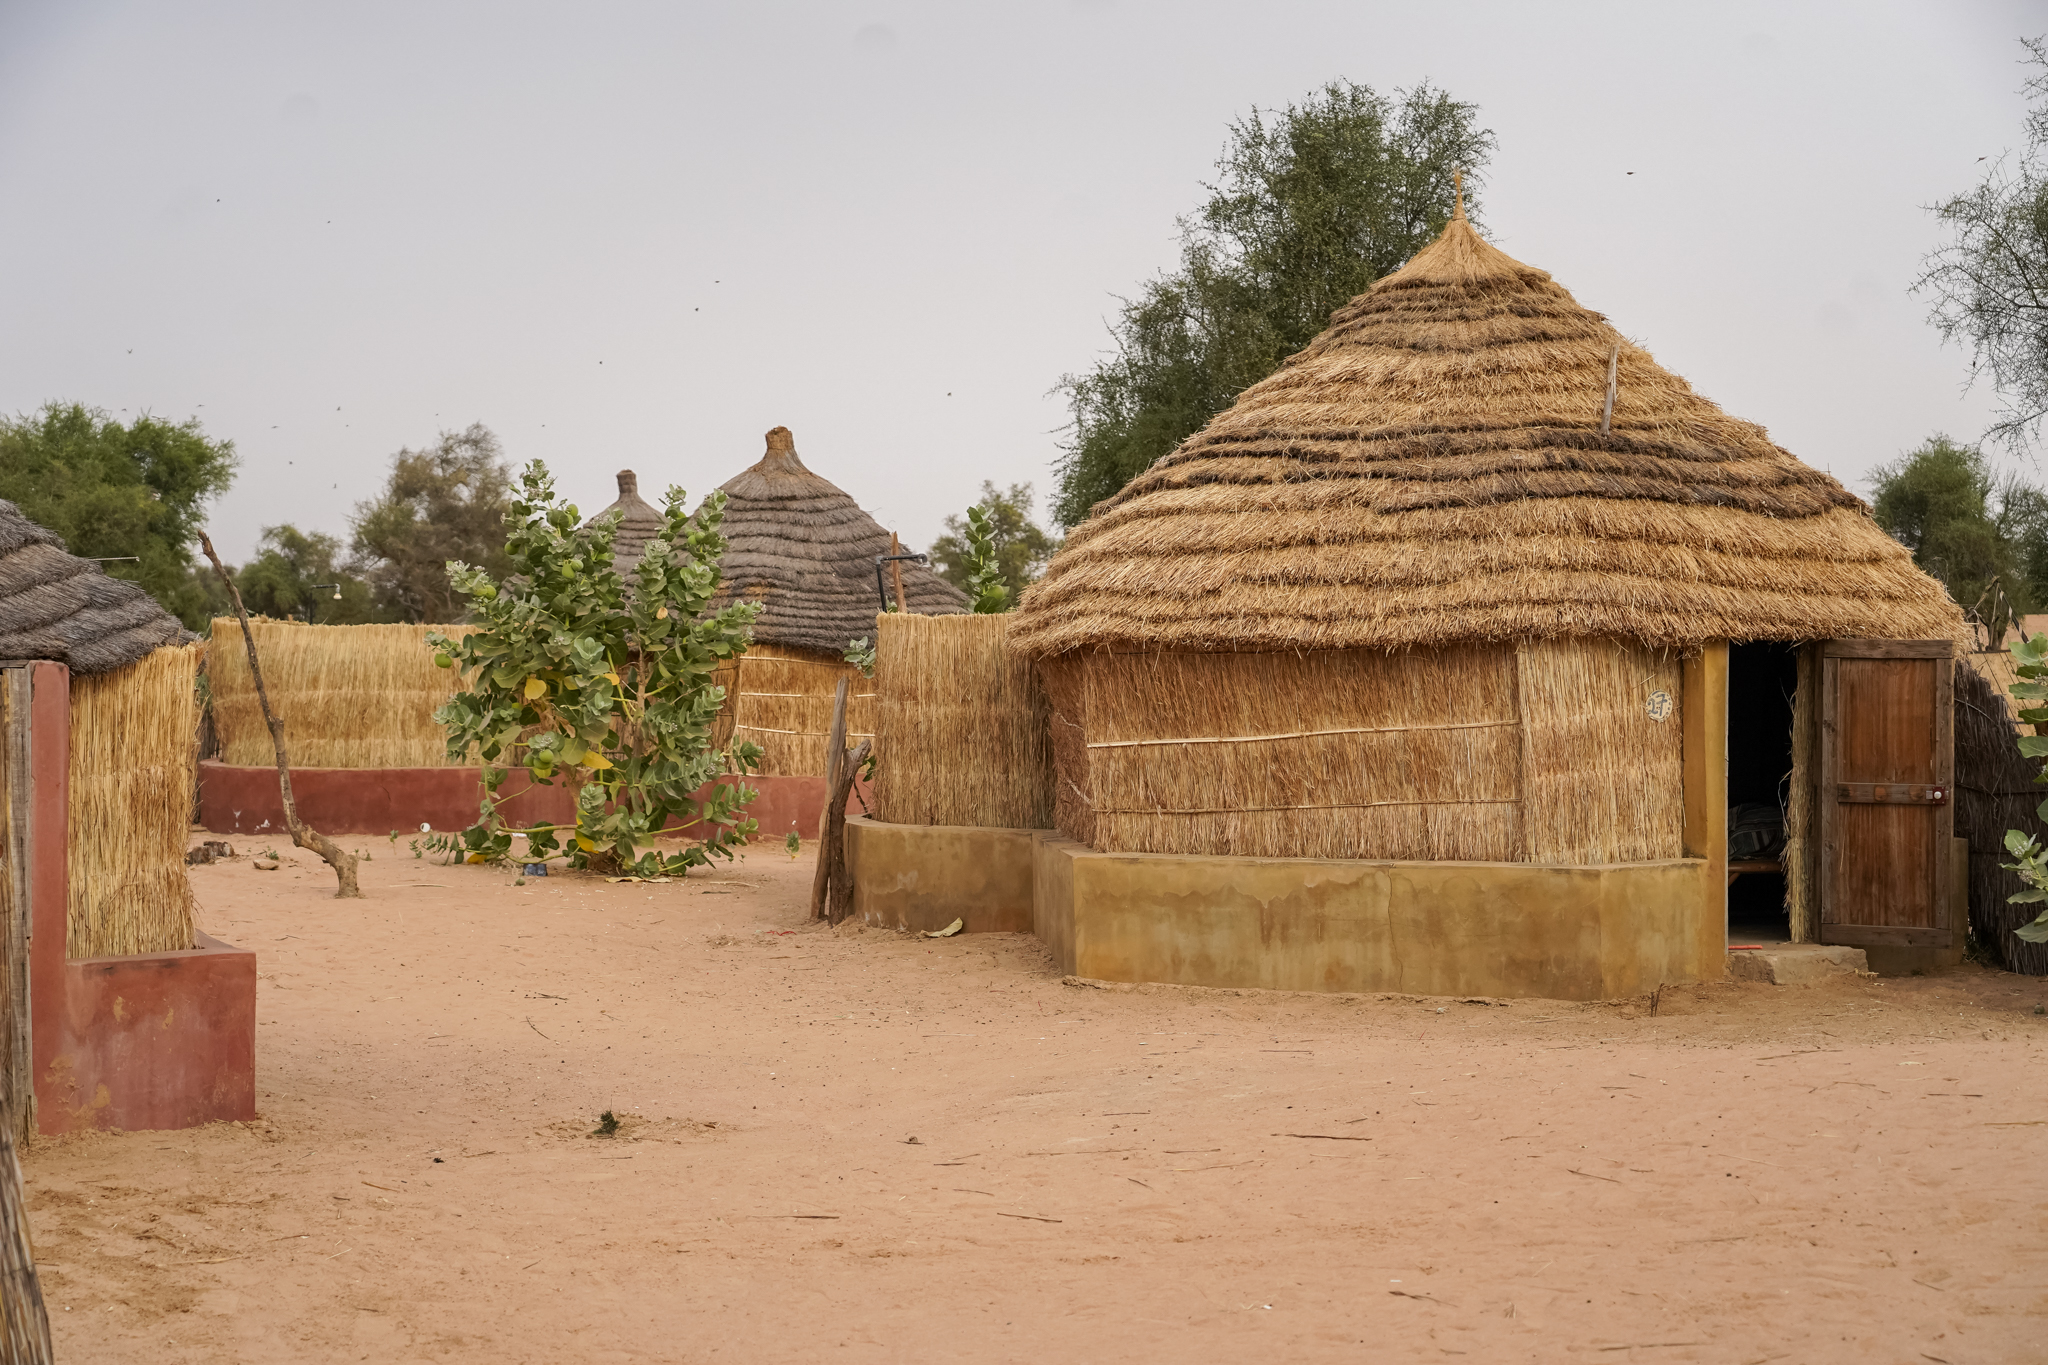 visite-senegal-village-peul-communauté